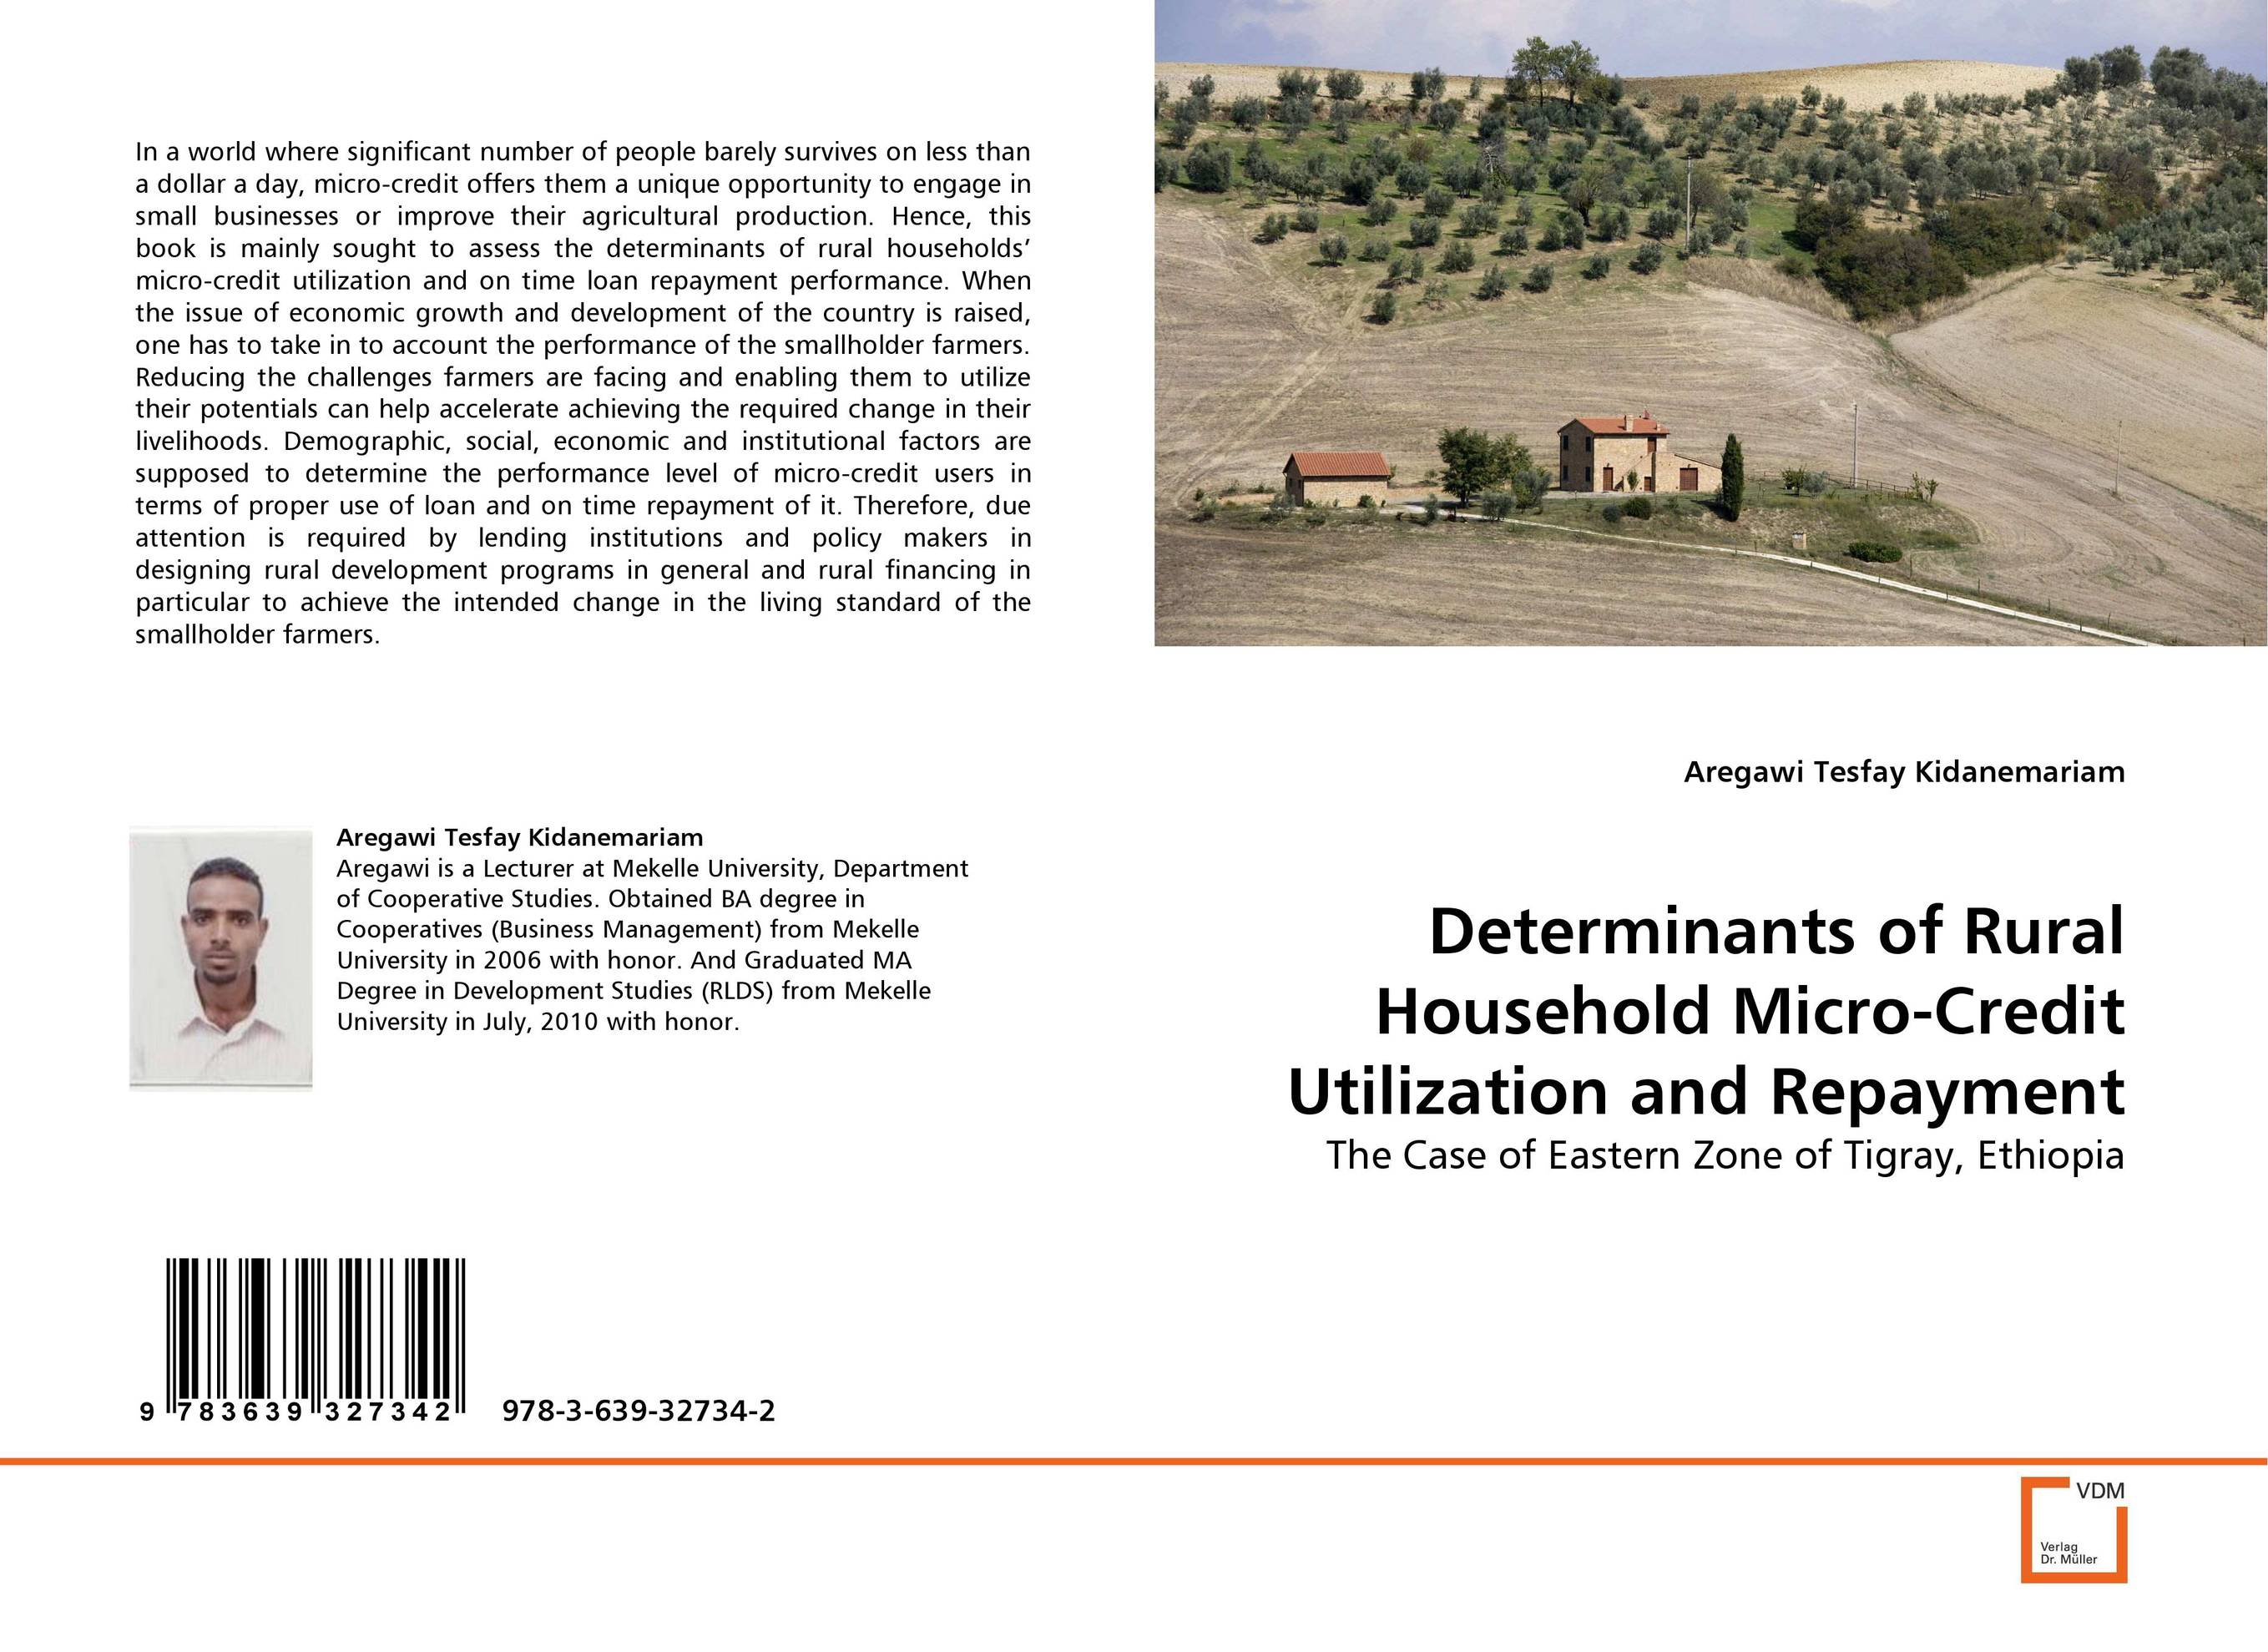 Determinants of Rural Household Micro-Credit Utilization and Repayment sikhulumile sinyolo smallholder irrigation water security and rural household welfare